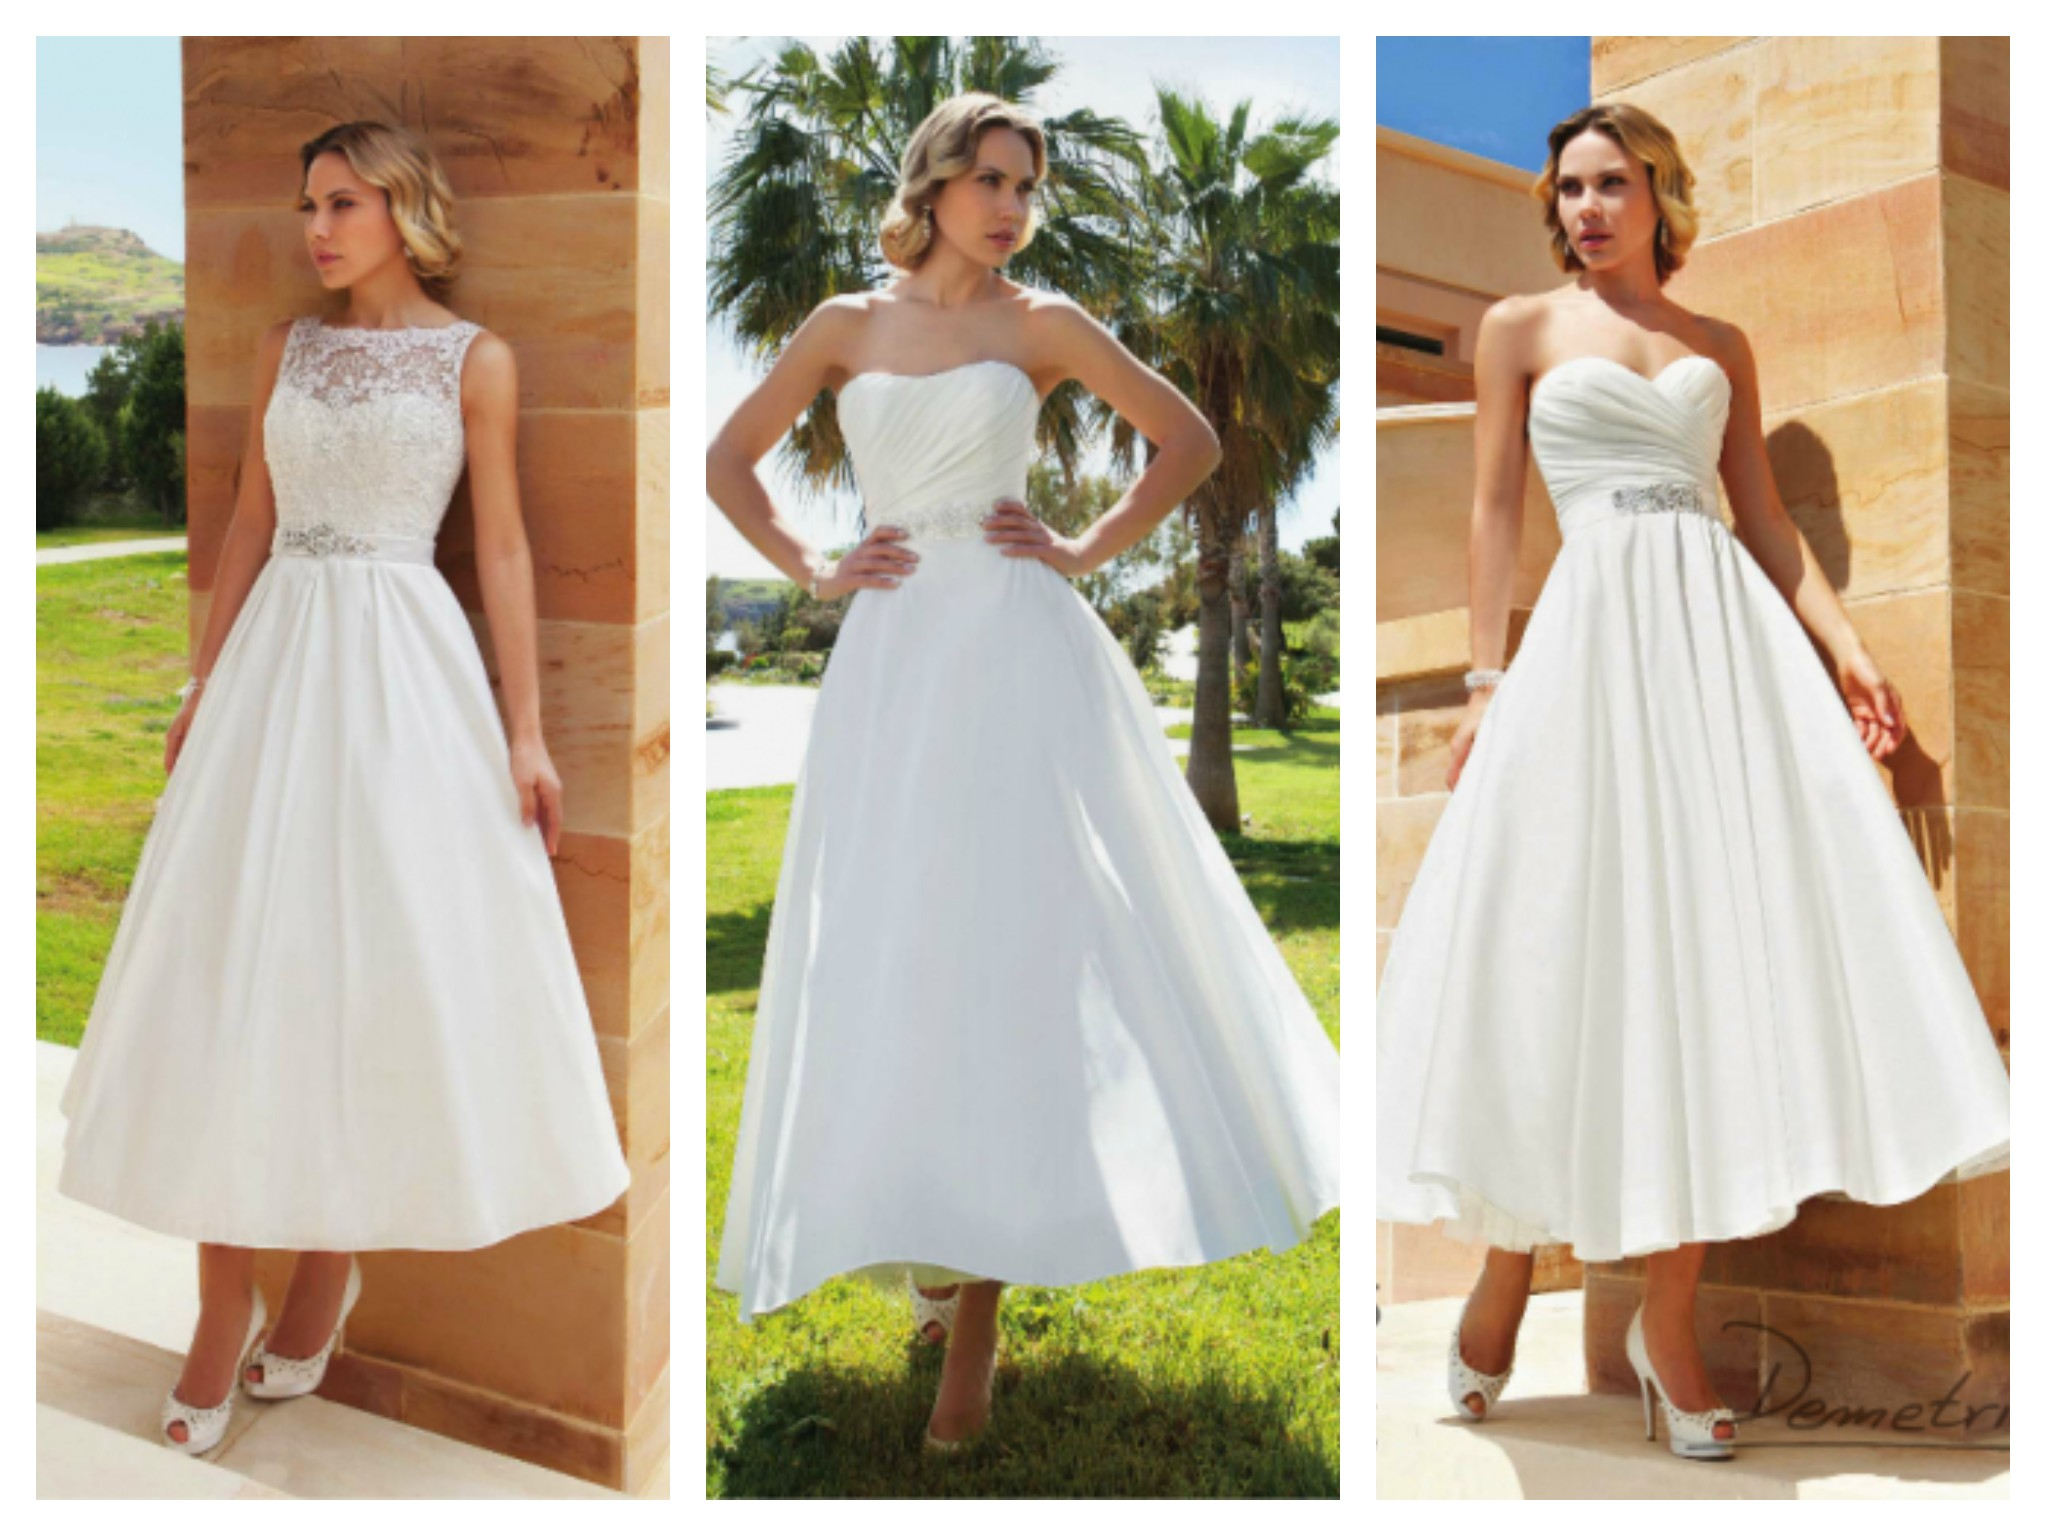 Robes midi collection Demetrios mariage 2014